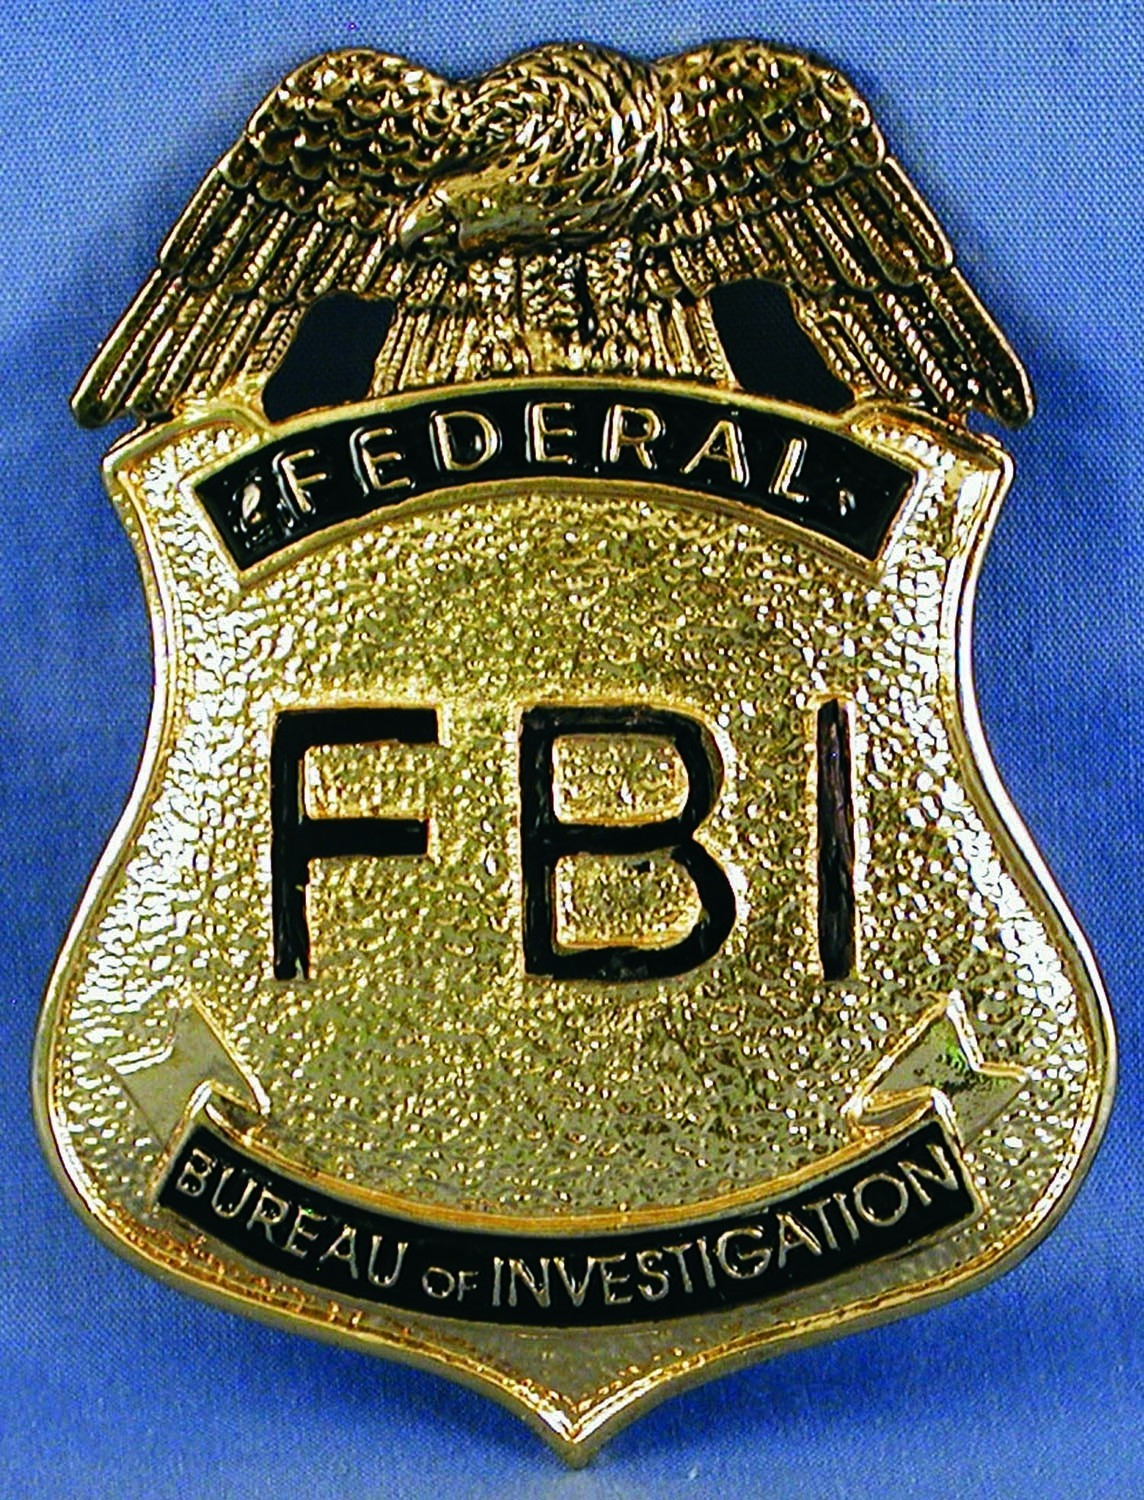 Federal Bureau of Investigation.